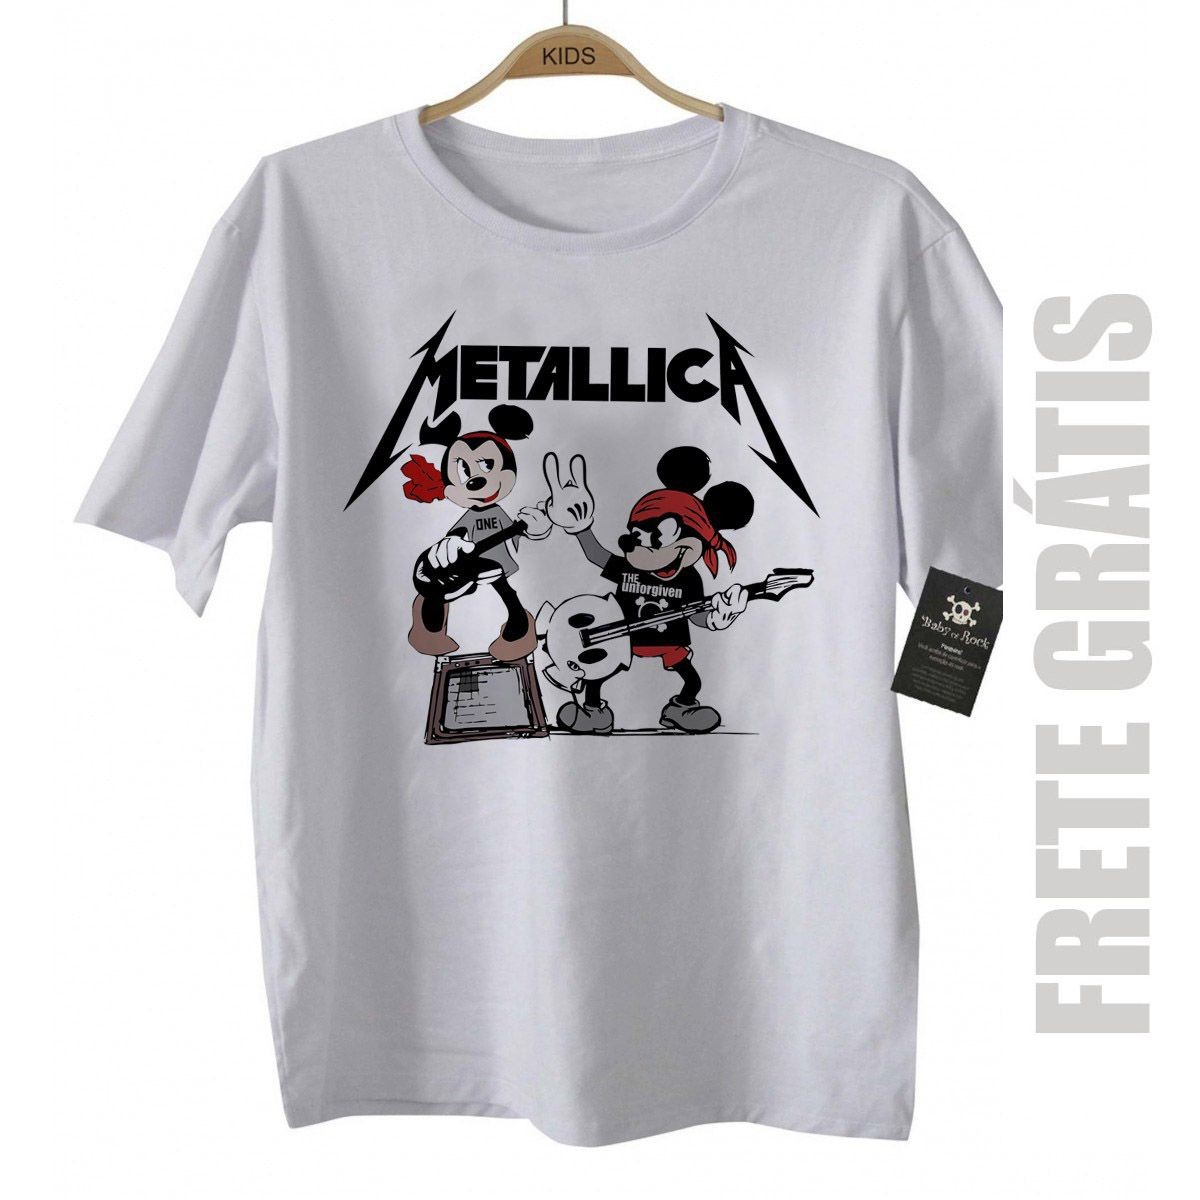 Camiseta de Rock Infantil - Metallica Mickey - White - Baby Monster S/A